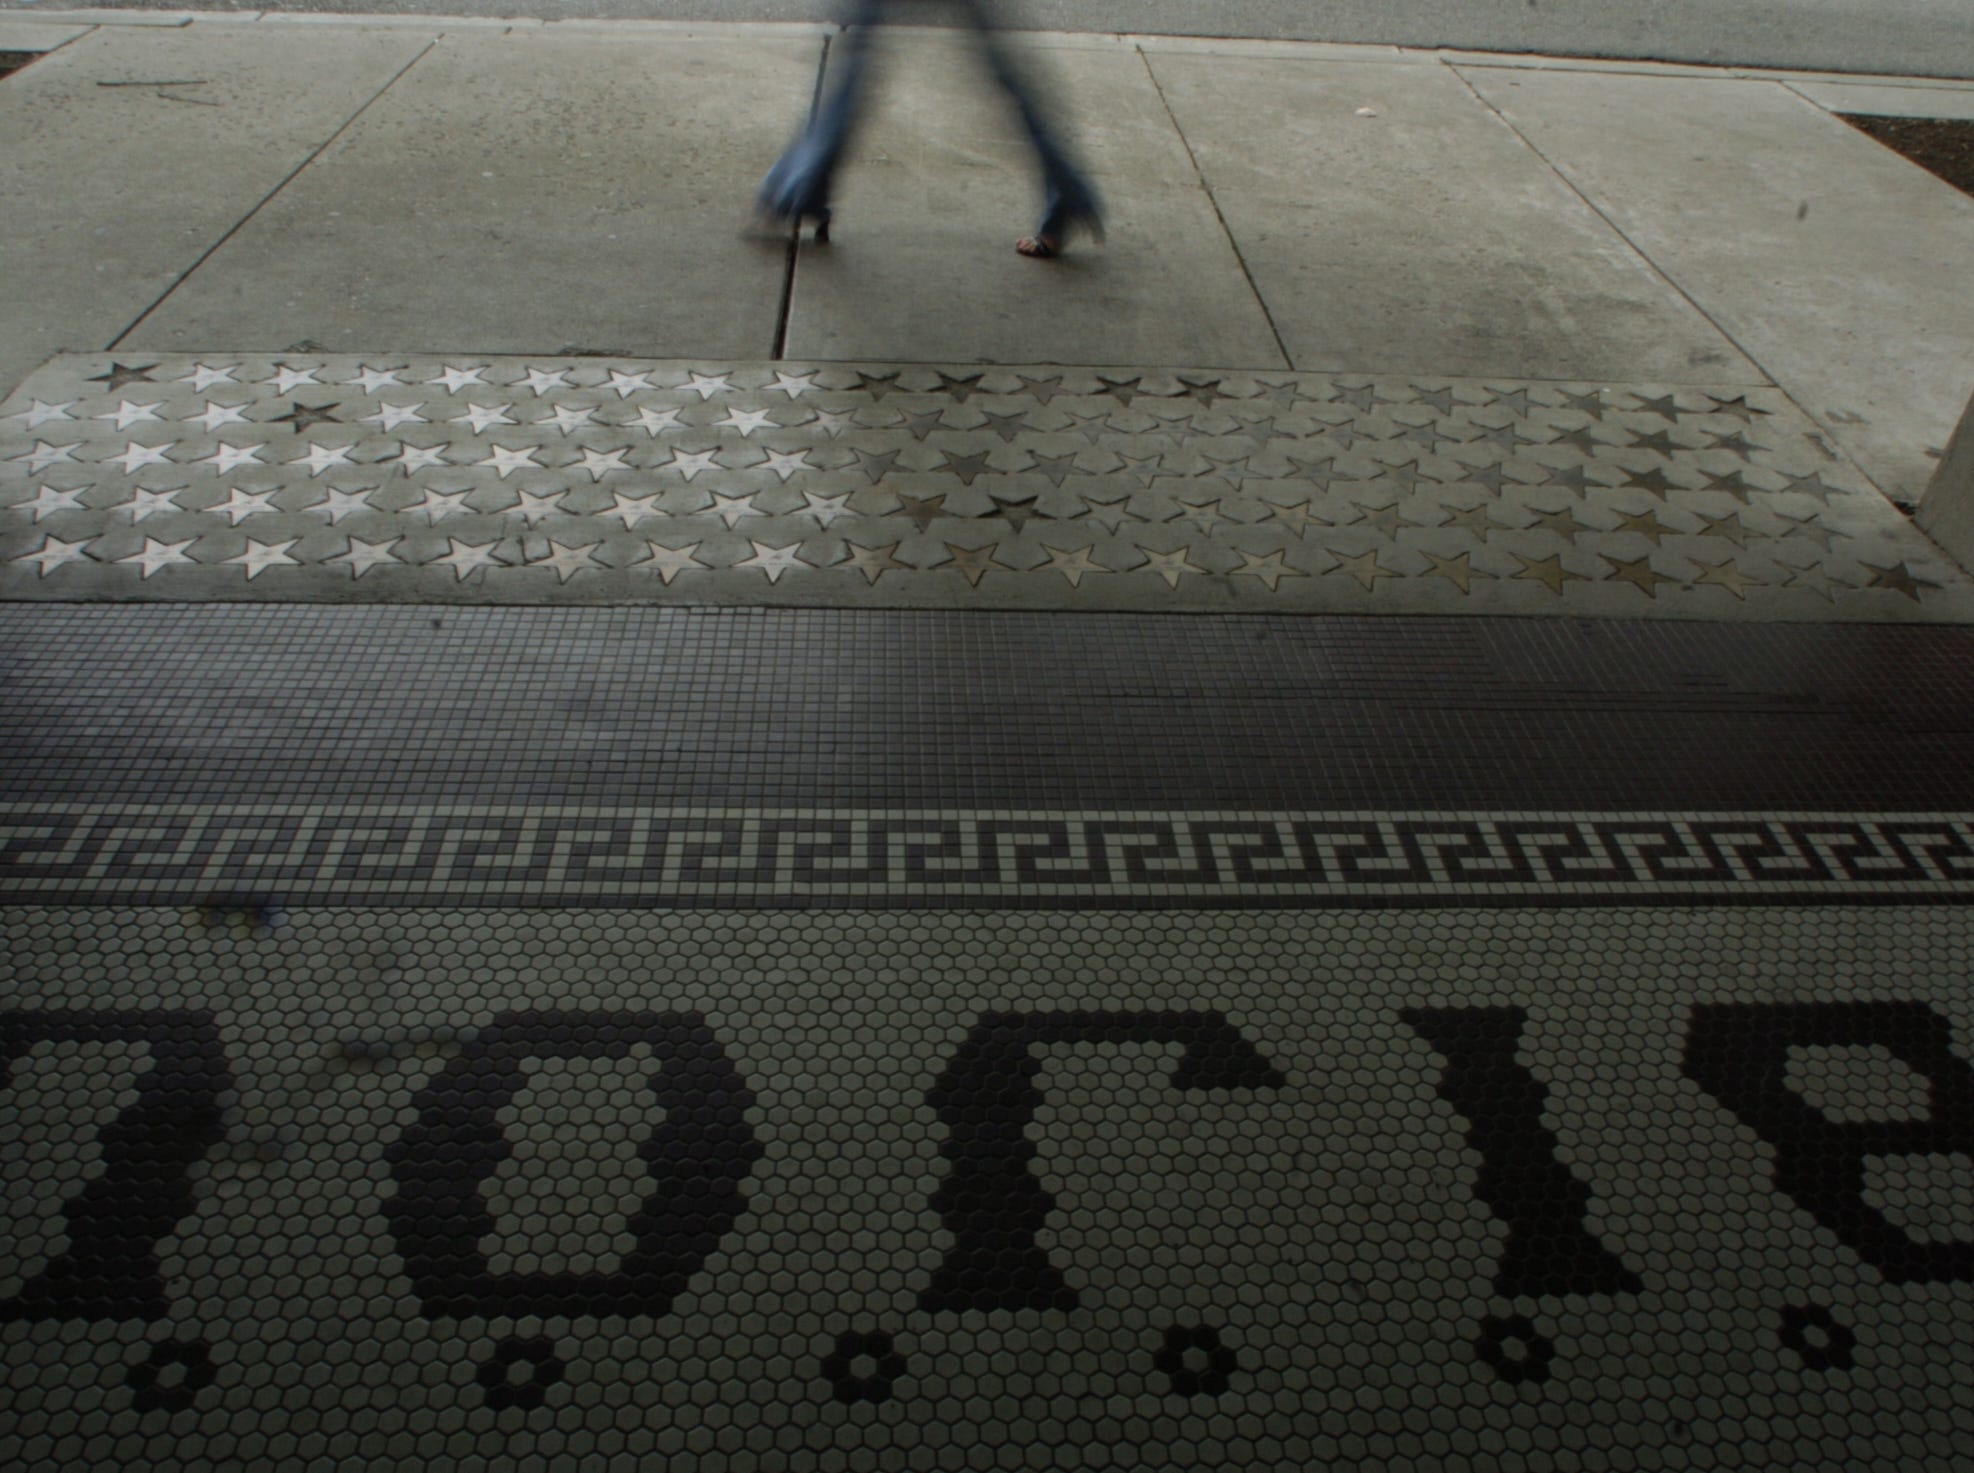 A pedestrian walks past the tile floor at the front of the Bijou Theatre in downtown Knoxville Tueseday afternoon.  6/4/2004